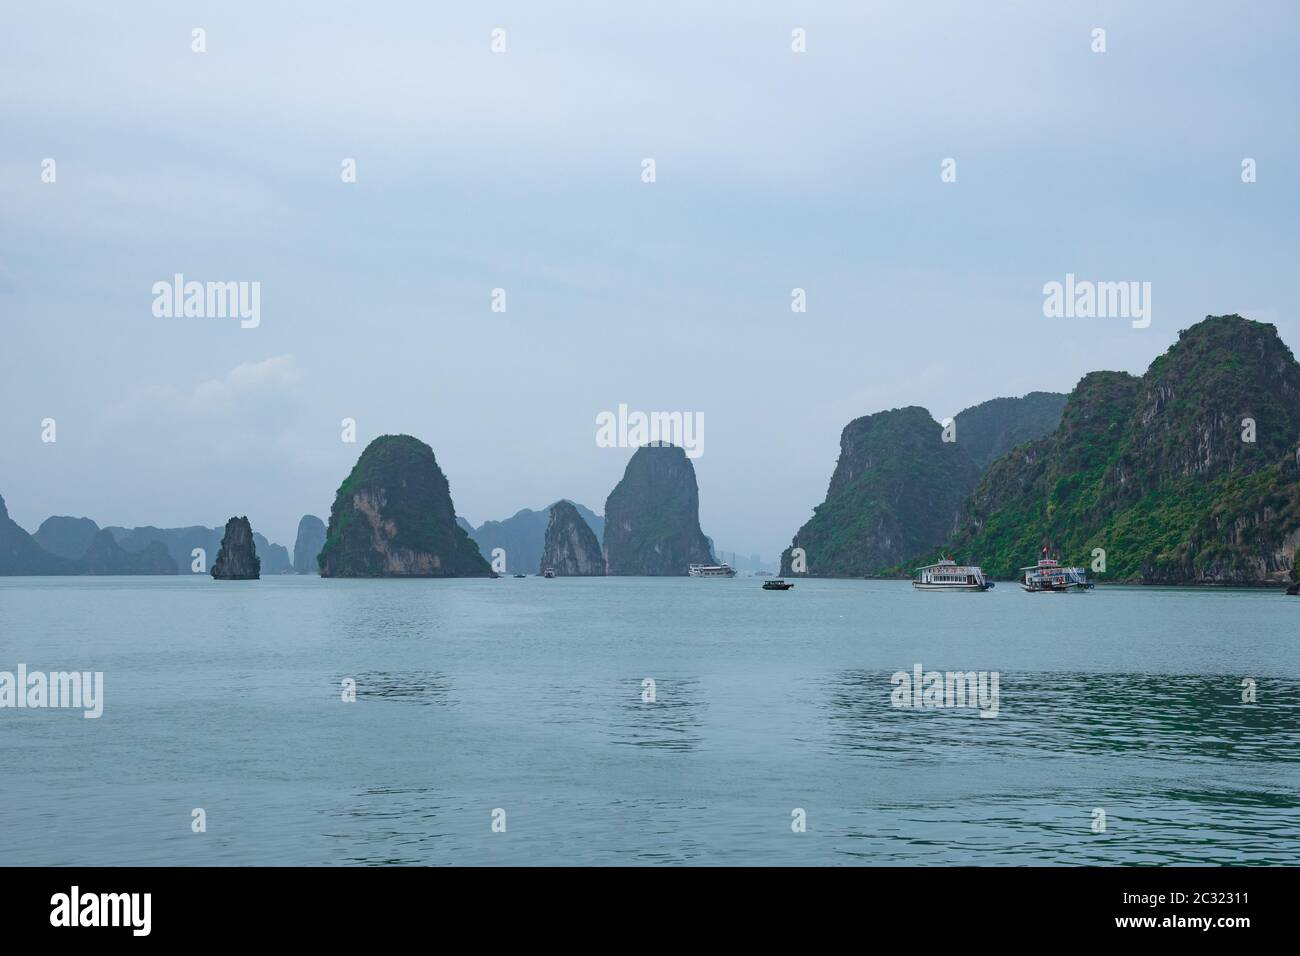 View on HA LONG BAY - a magnificent UNESCO world Heritage and one of New Seven Natural Wonders of the world. Vietnam. Stock Photo